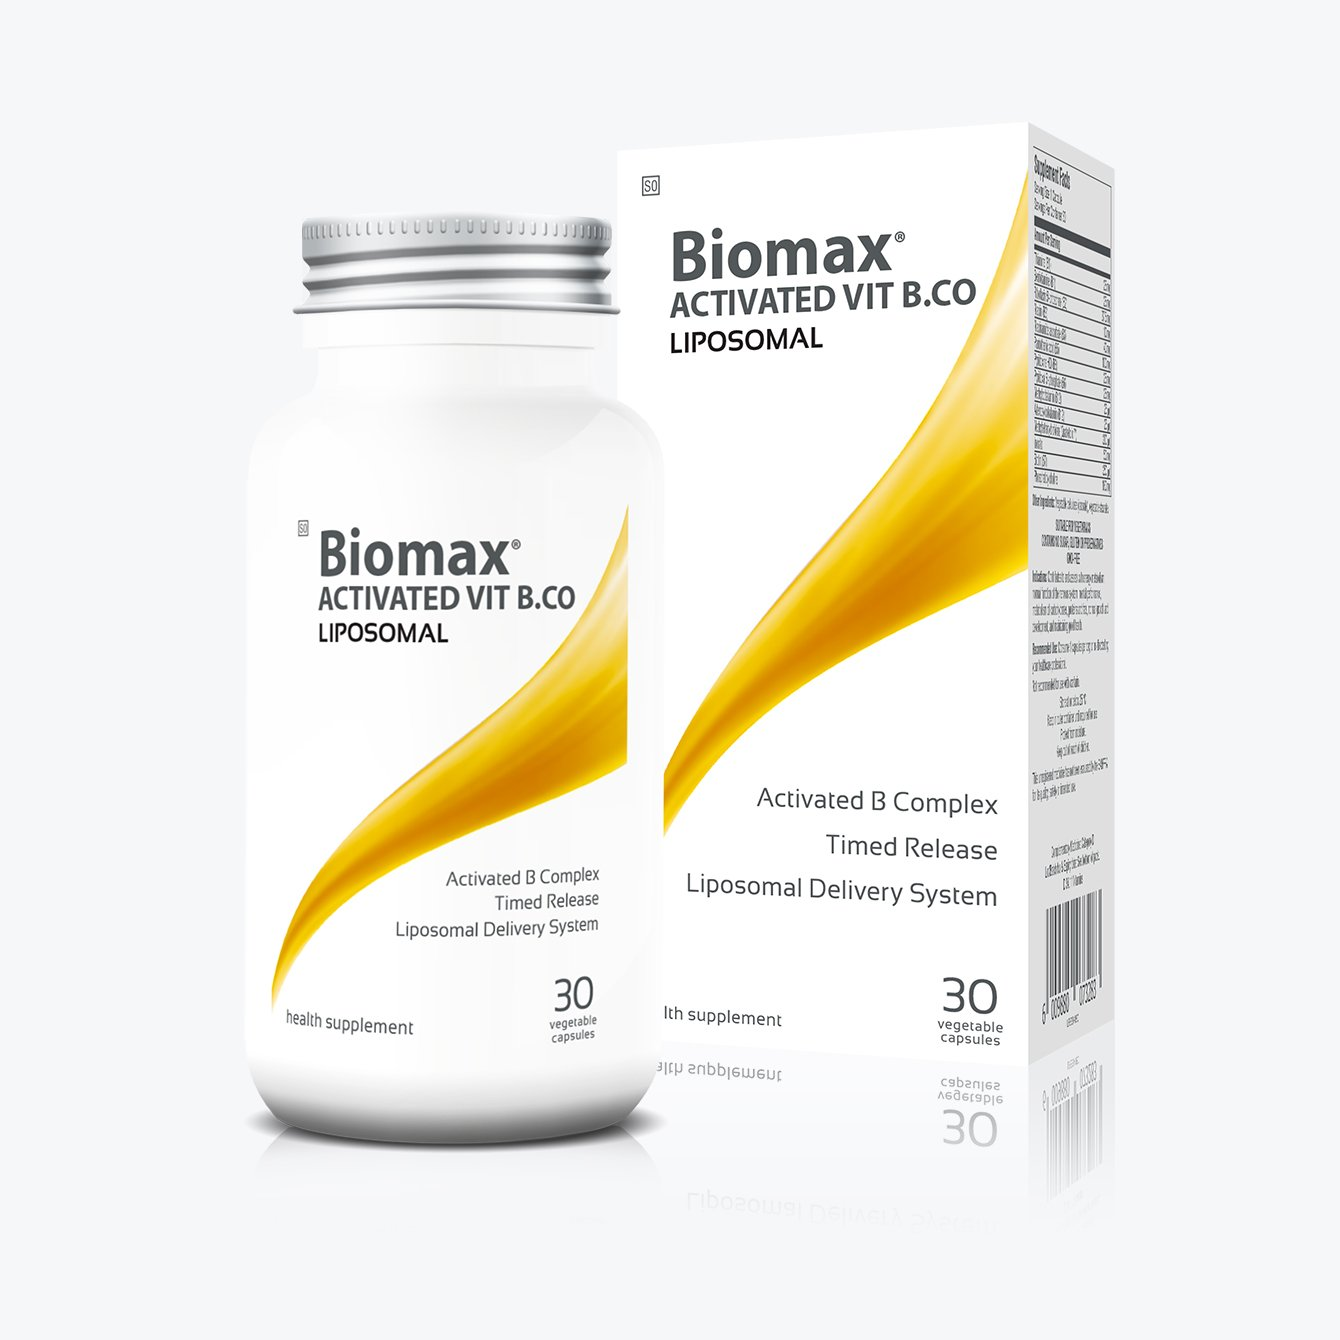 Biomax Activated Vitamin B Complex Liposomal